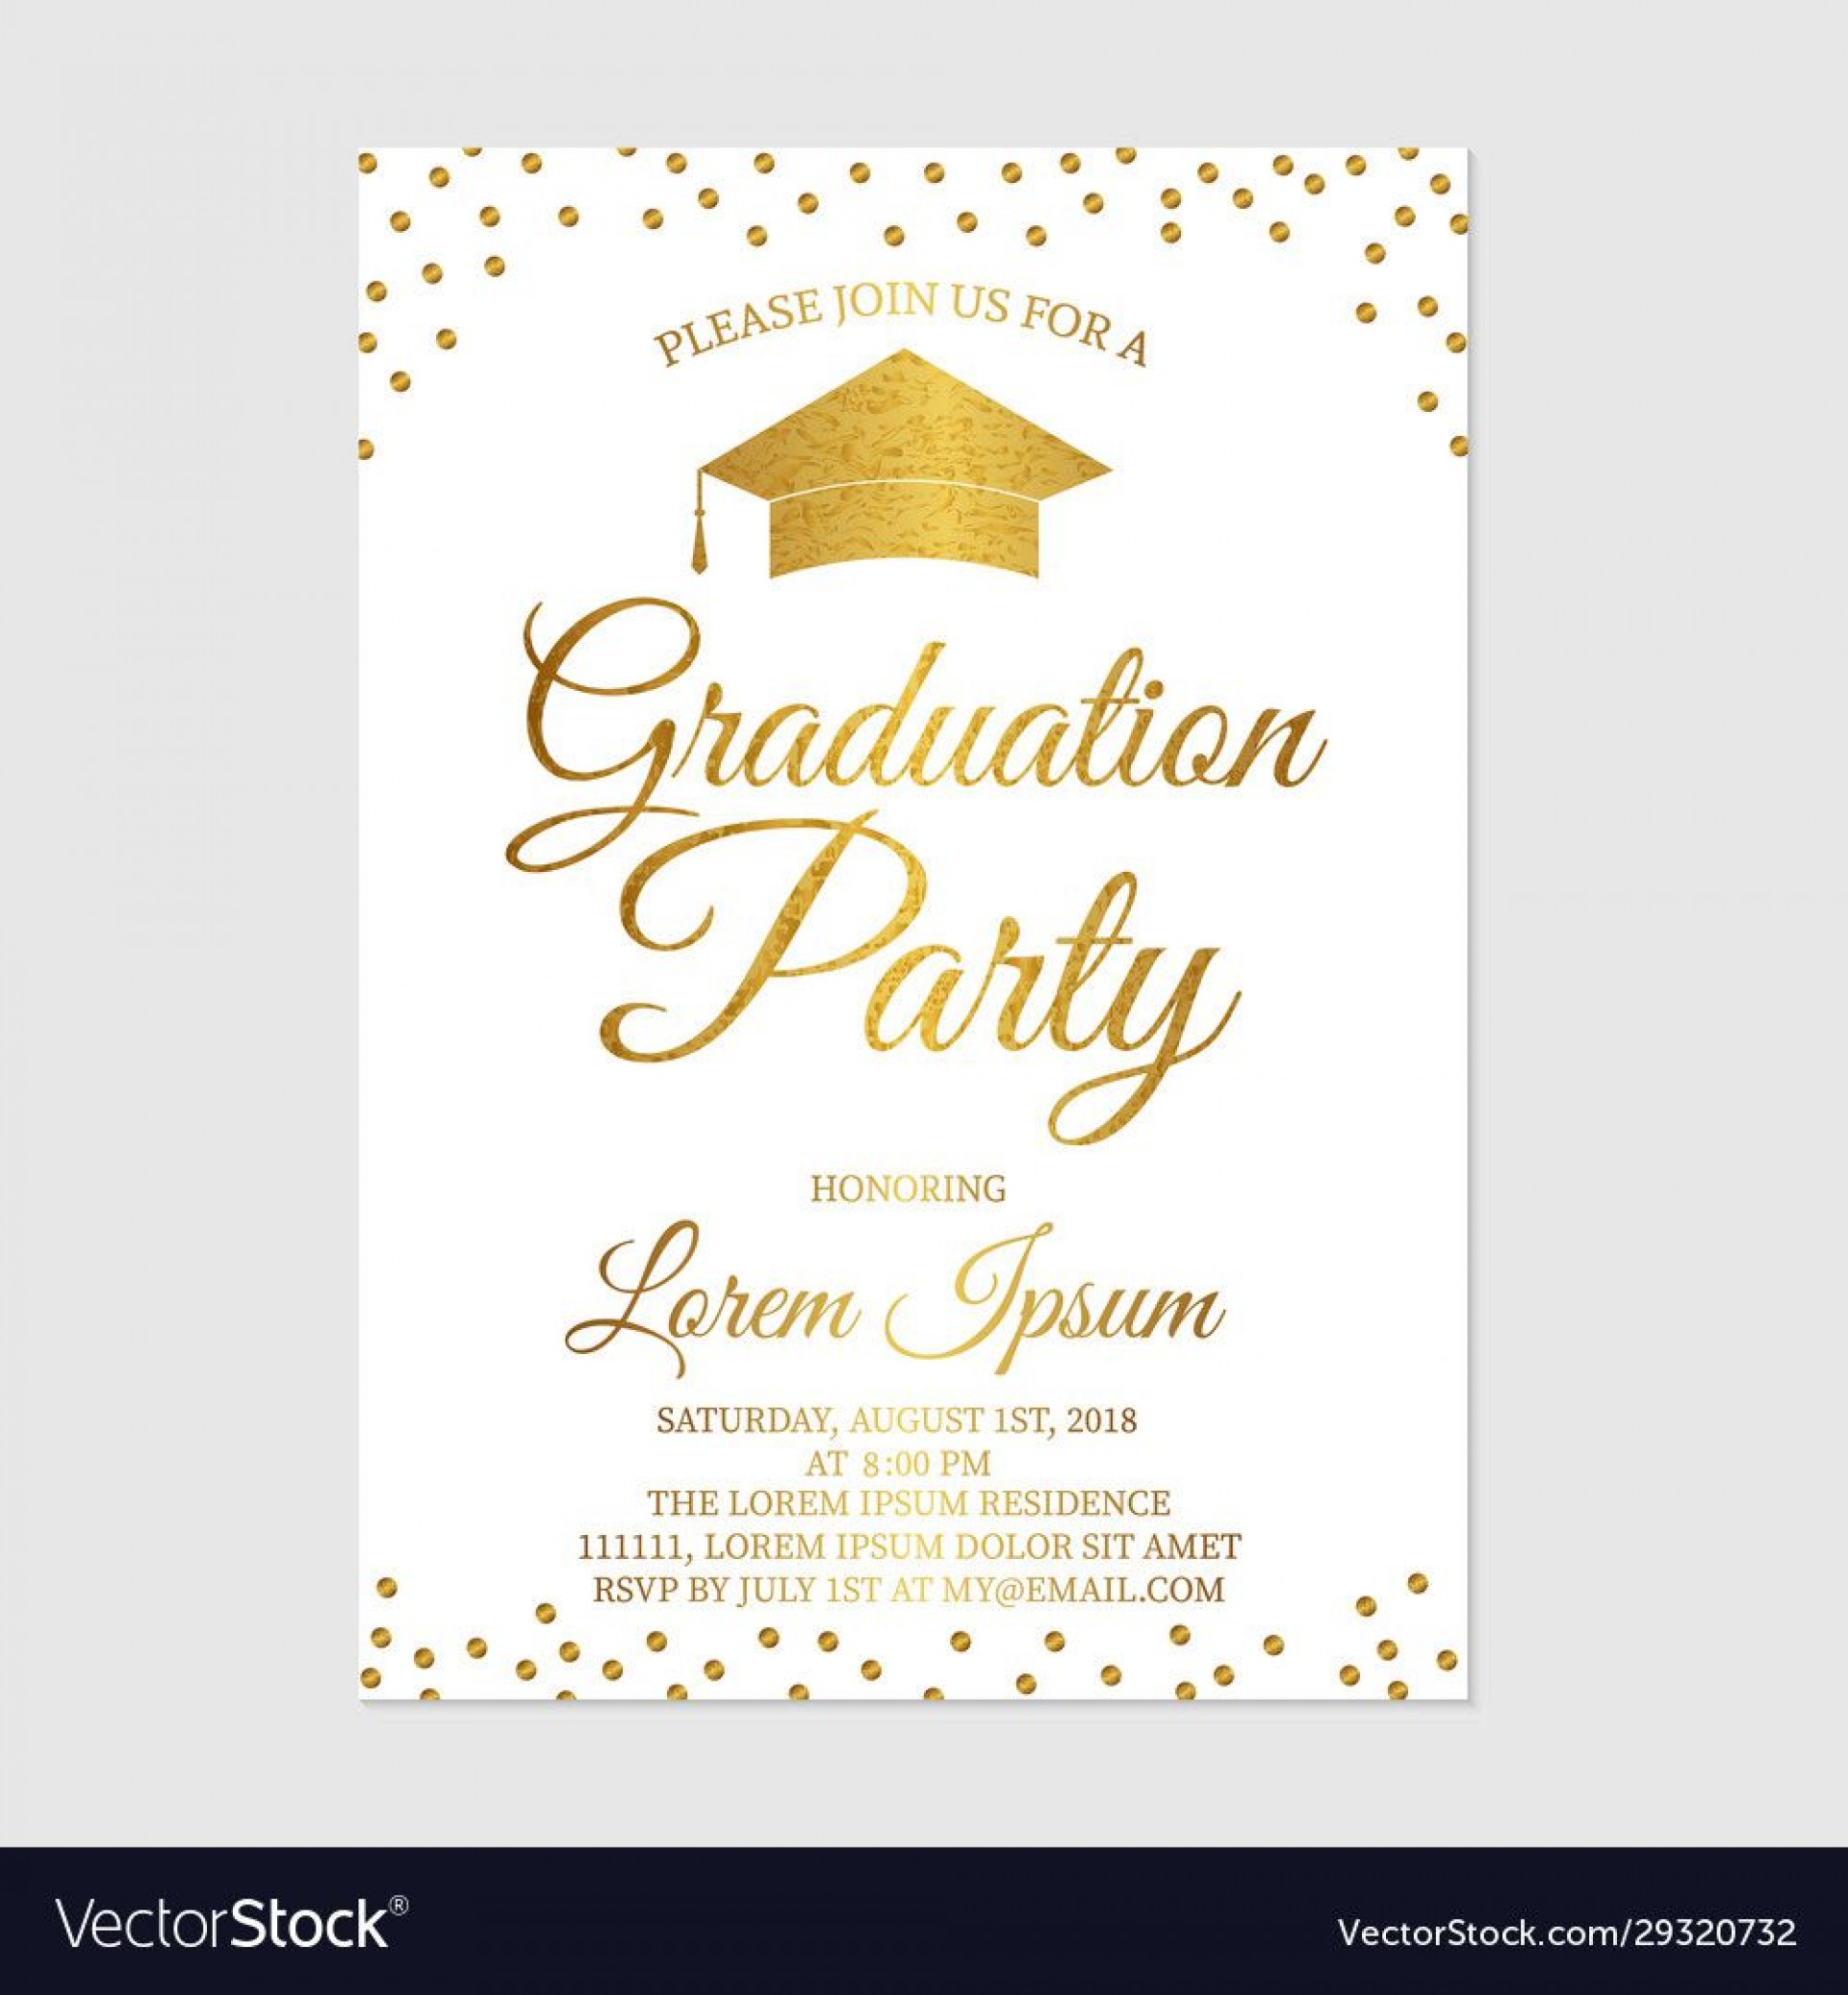 008 Exceptional Graduation Party Invitation Template Picture  Templates 4 Per Page Free Reception1920